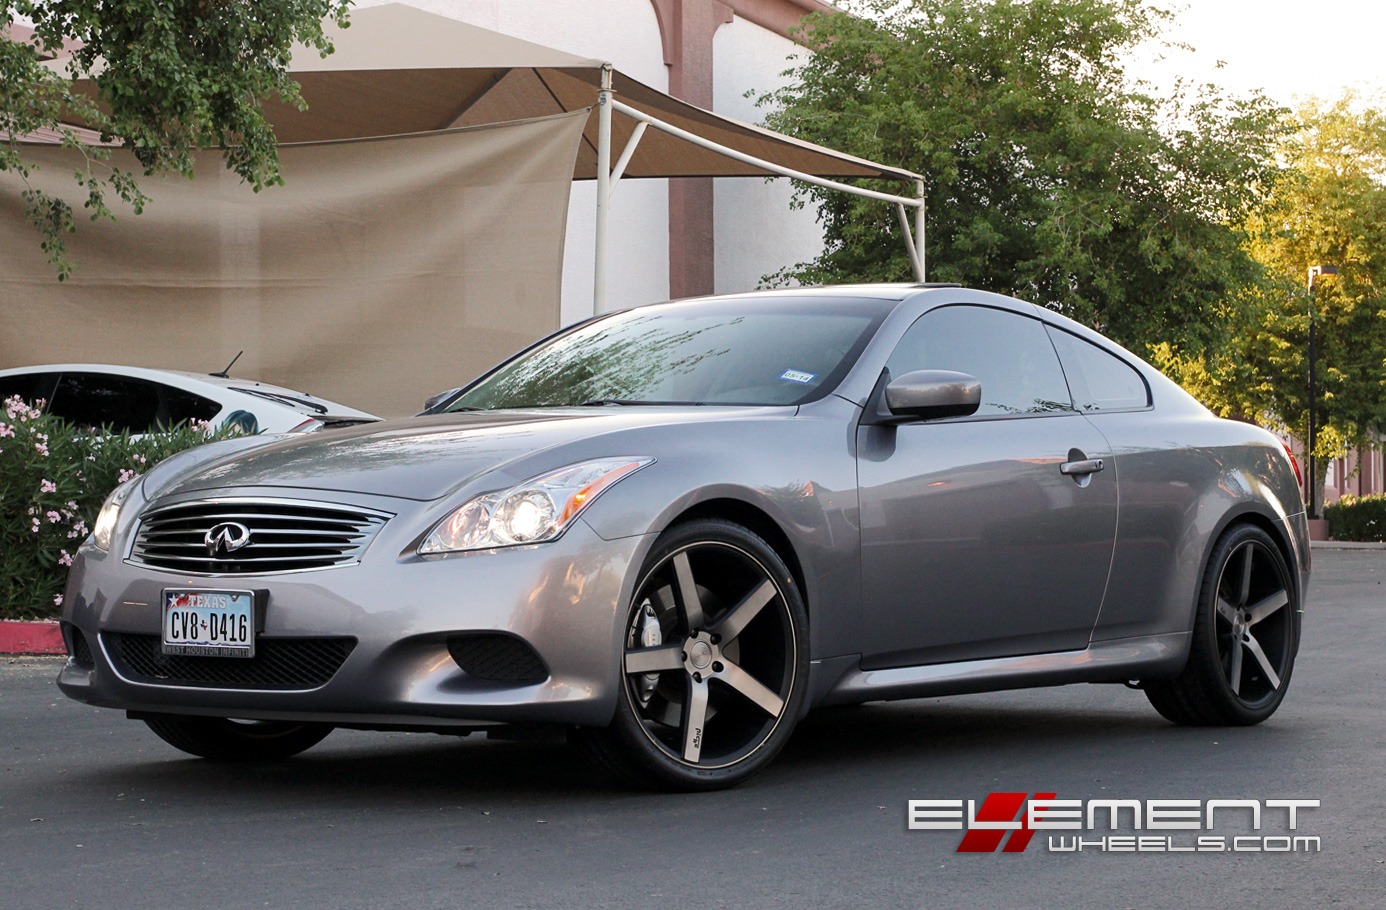 20 Inch Staggered Black Machined W Tint Infiniti G37s Coupe W Specs Element Wheels